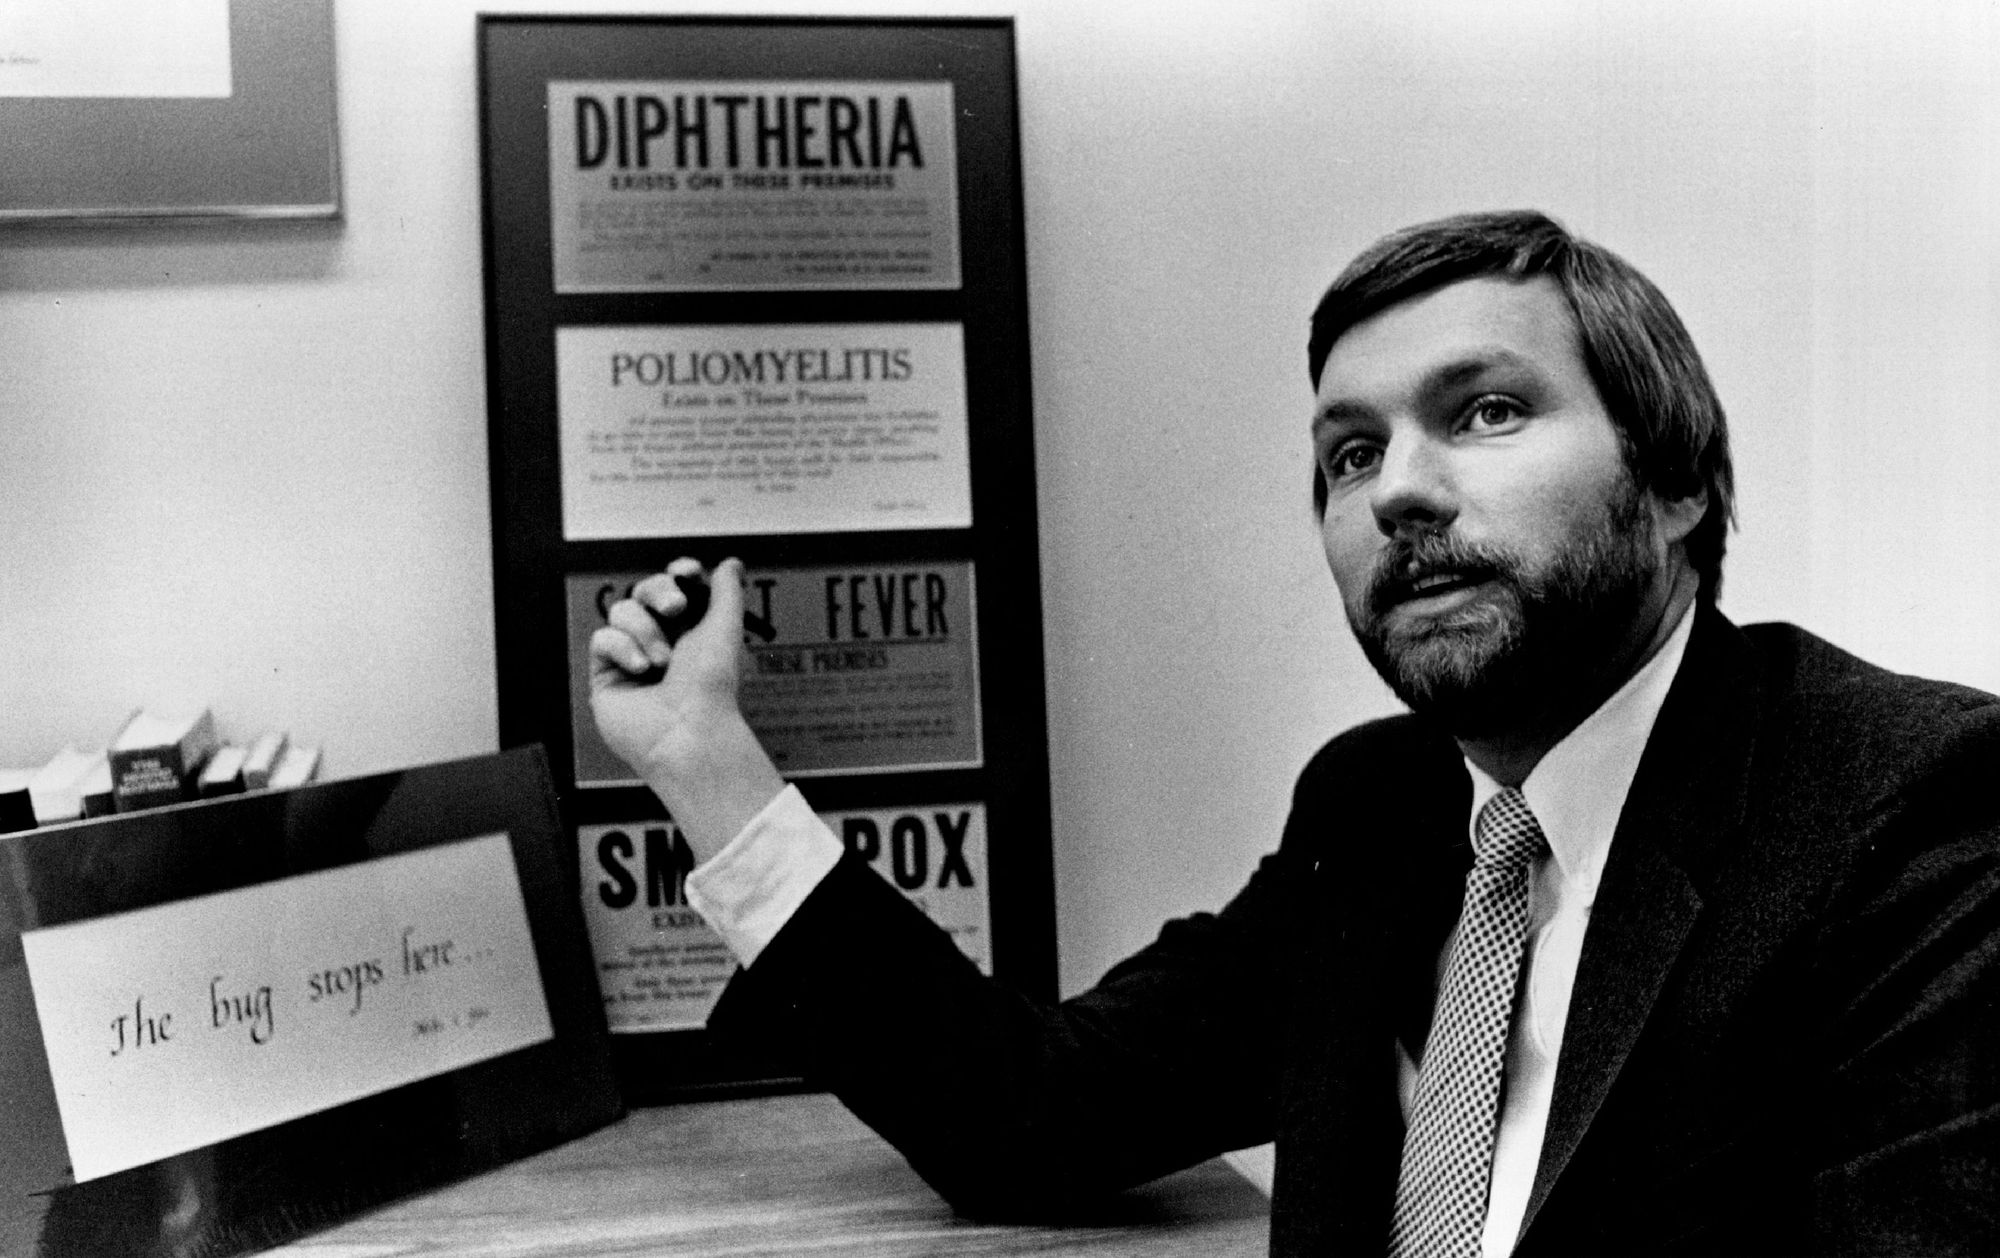 February 16, 1986 State Epidemiologist Michael Osterholm says quarantine of people carrying AIDS virus is not the answer; 1930s-era quarantine signs for other diseases are on his office wall. February 7, 1986